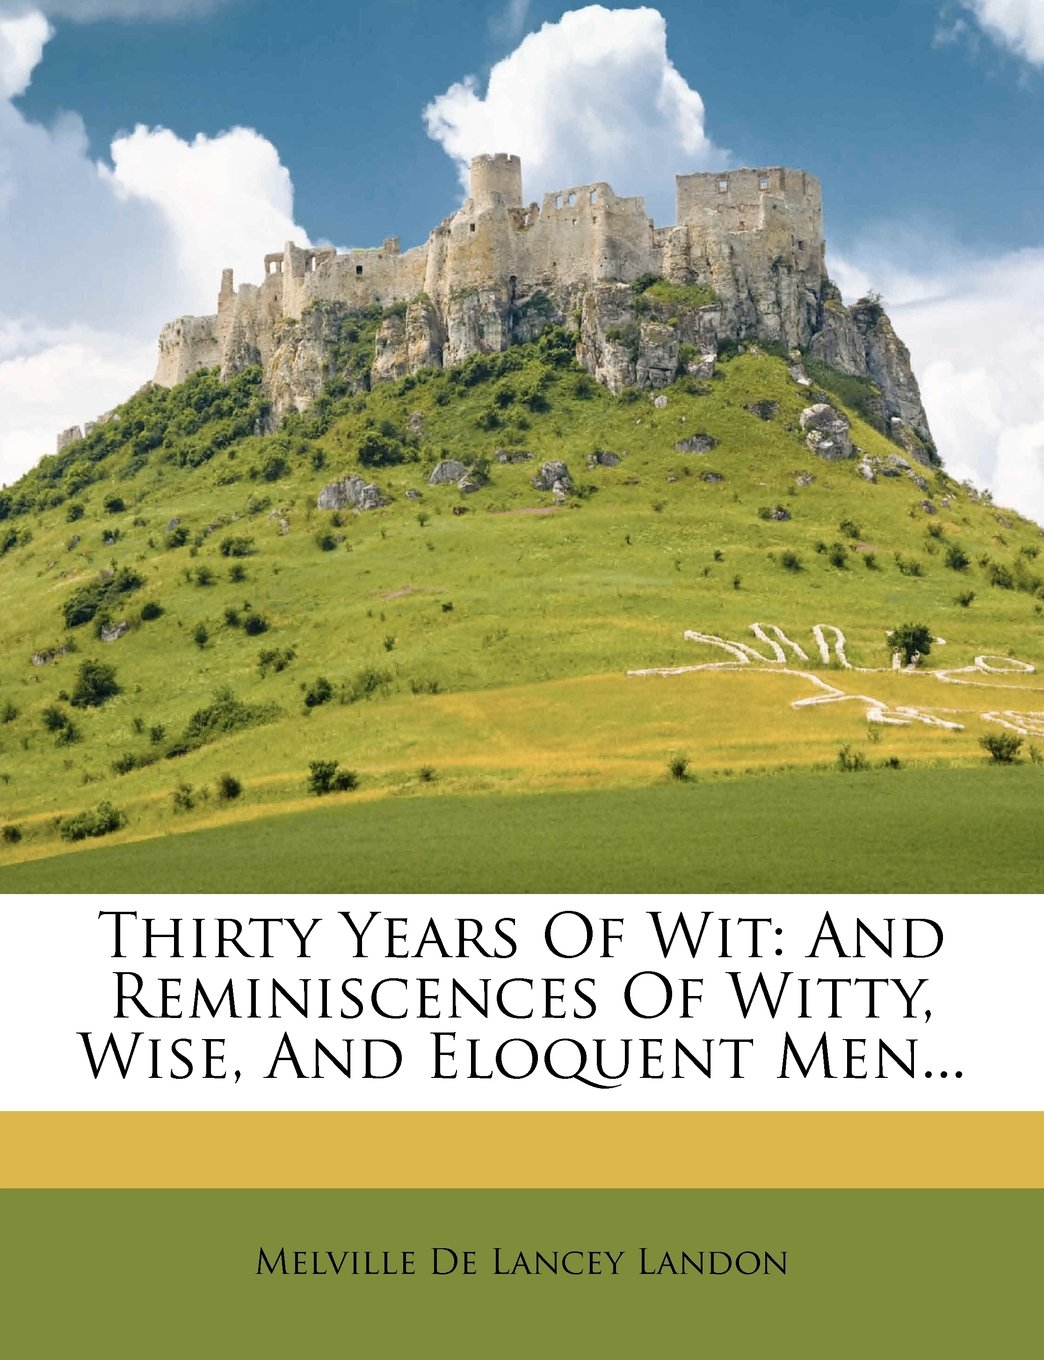 Download Thirty Years Of Wit: And Reminiscences Of Witty, Wise, And Eloquent Men... pdf epub